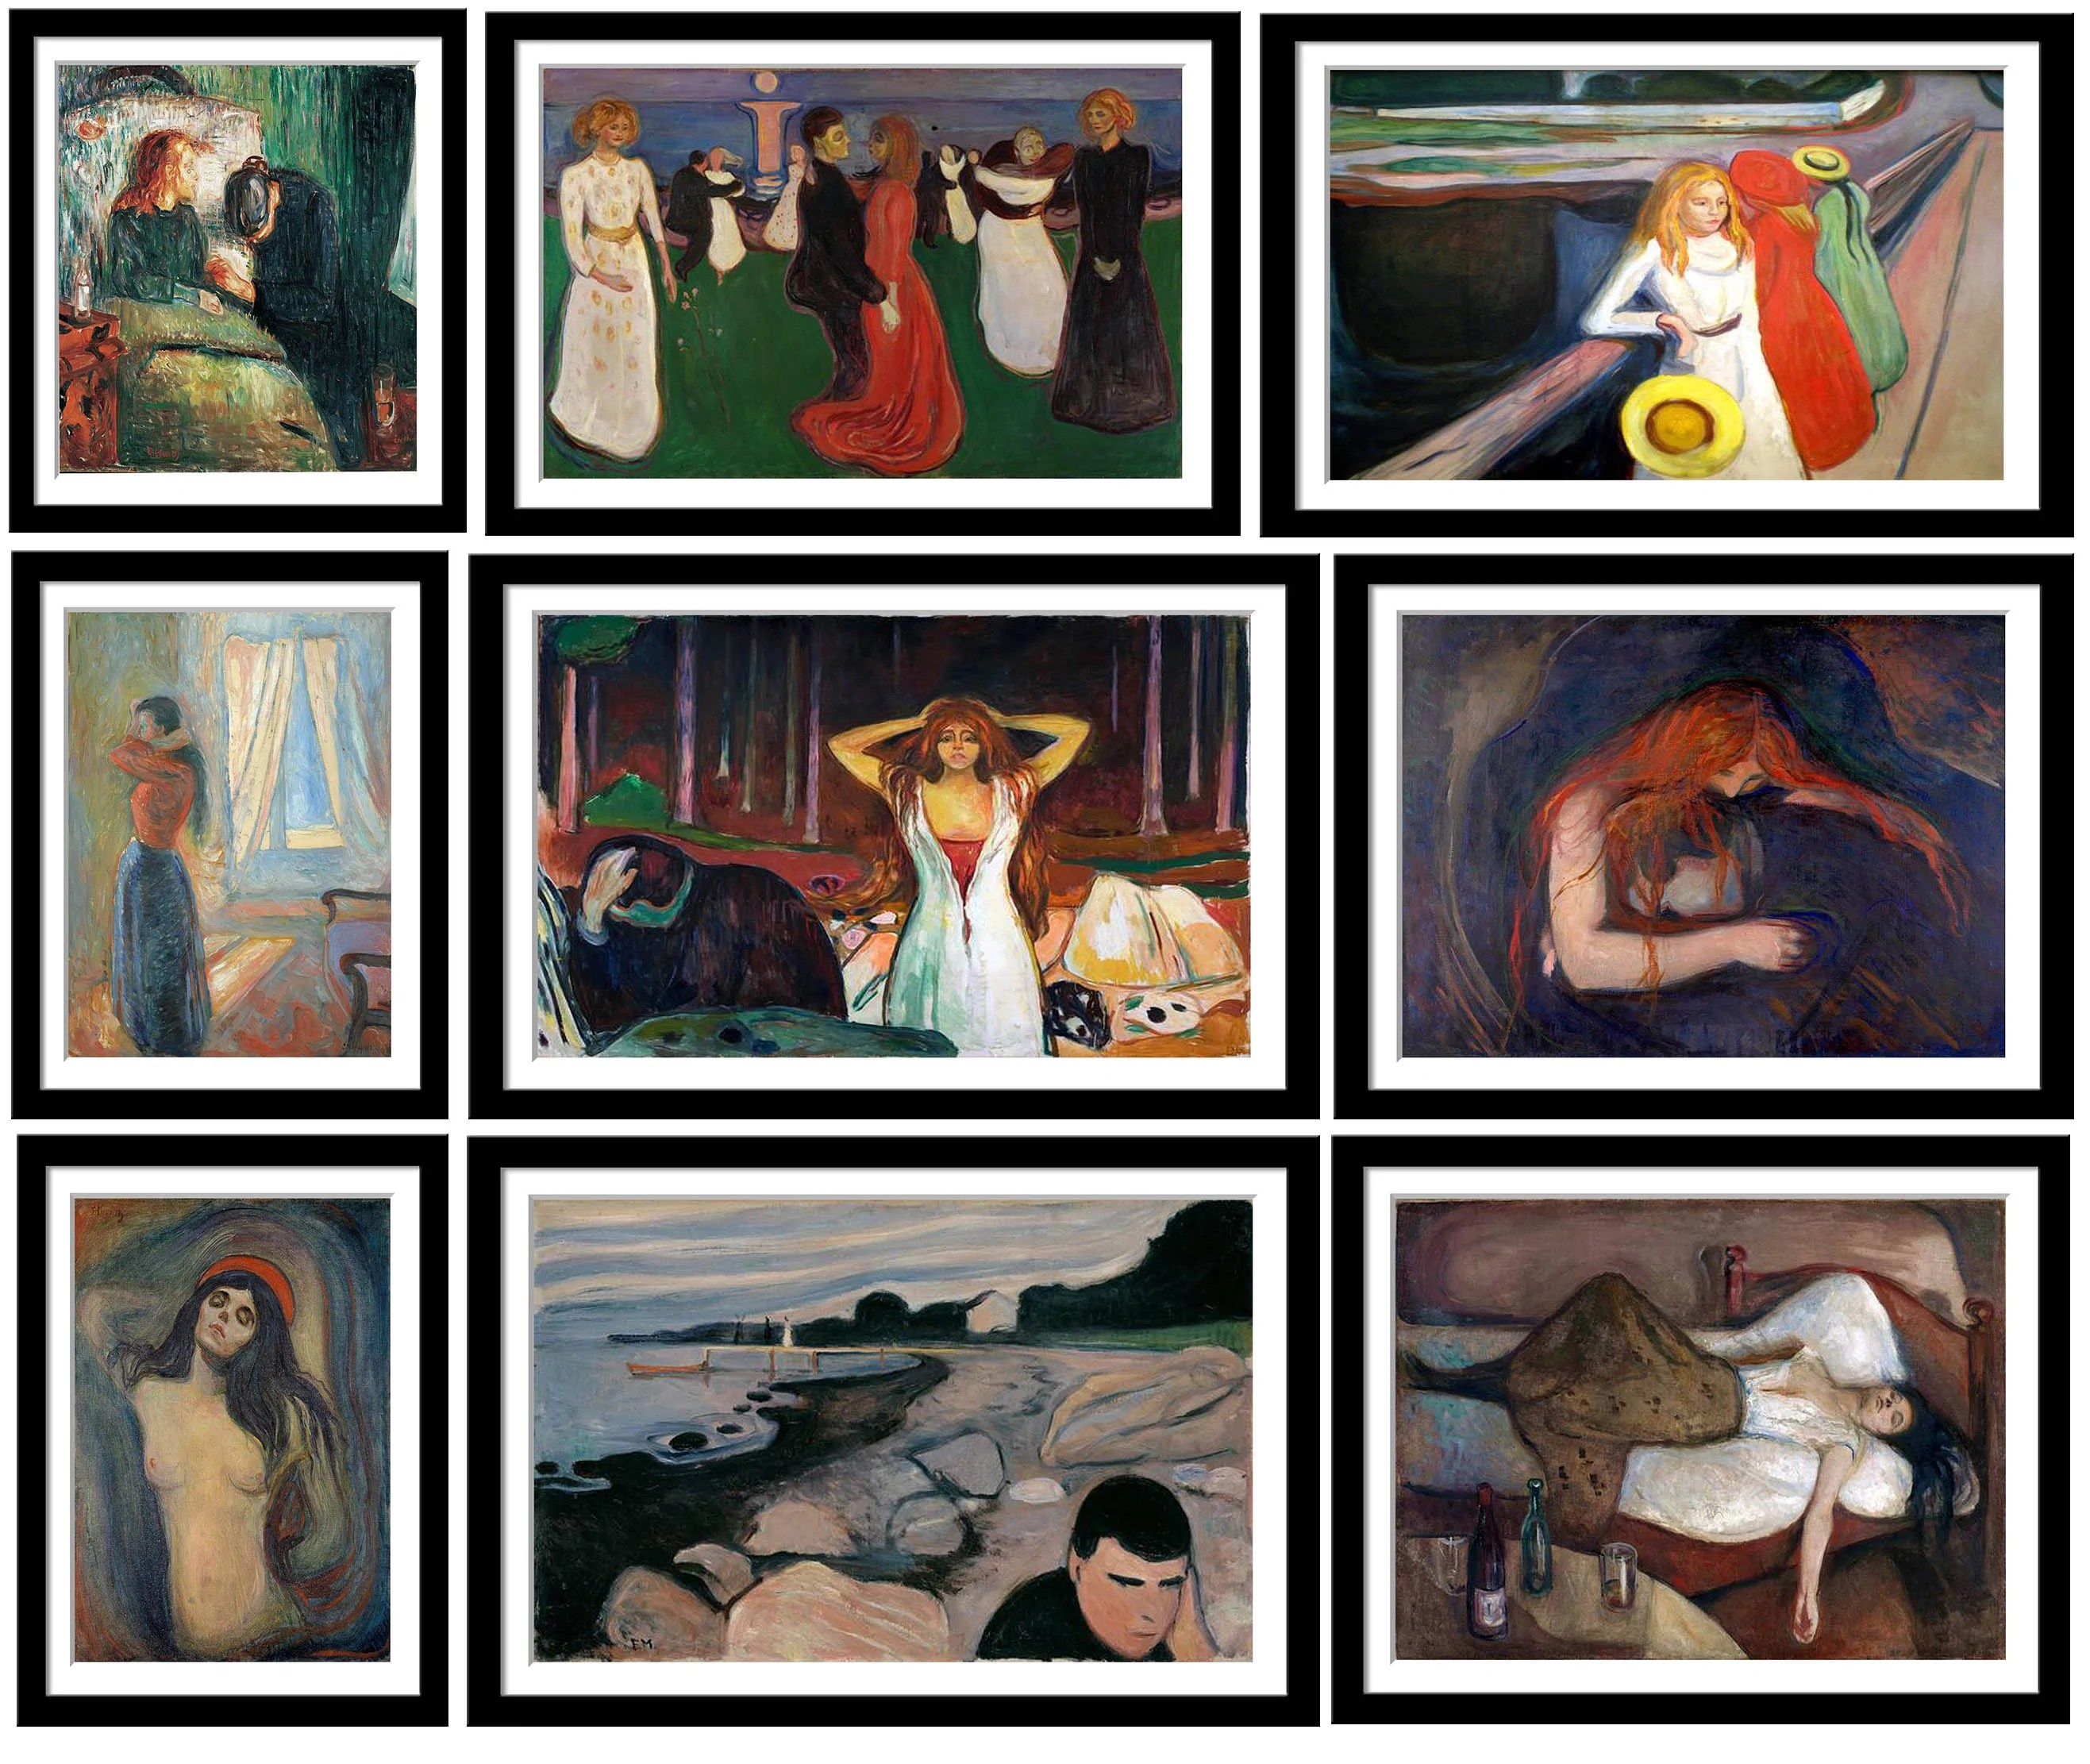 edvard munch set of 10 framed poster paper 12 x 17 inches each